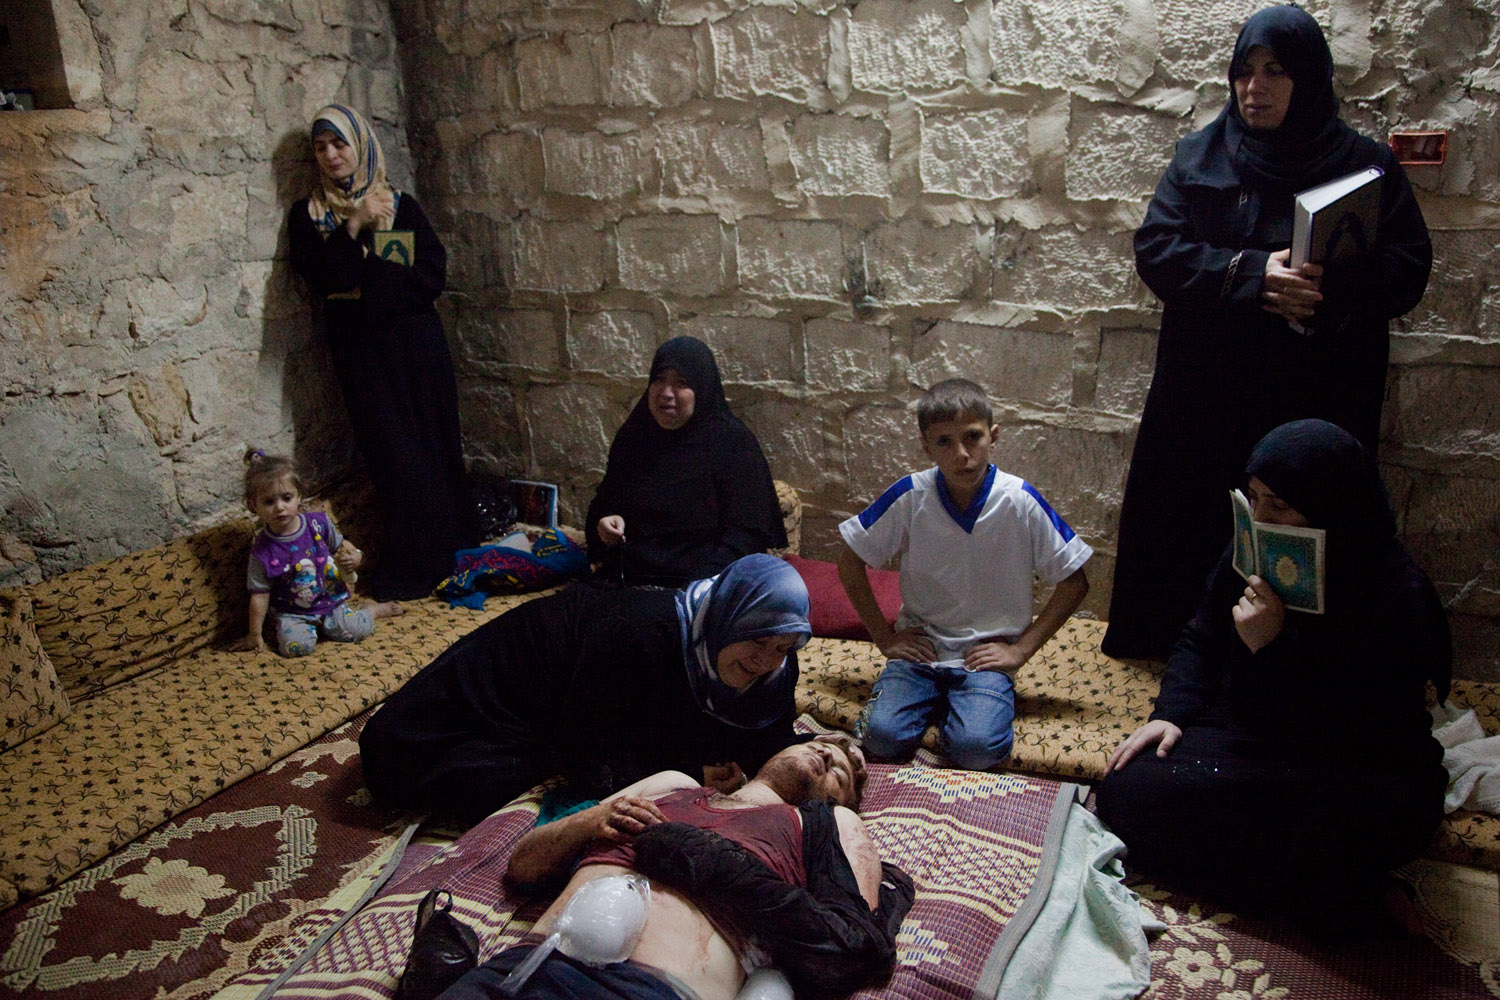 The mother of Alaa Milhem, 22, grieves over her dead son in the city of Maarat Al Noman on June 9, 2012. Alaa was a student of French Literature at the University of Aleppo and had been studying for exams when the shelling started. He was killed by a mortar shell fired by the Syrian Army while trying to help injured civilians around him.